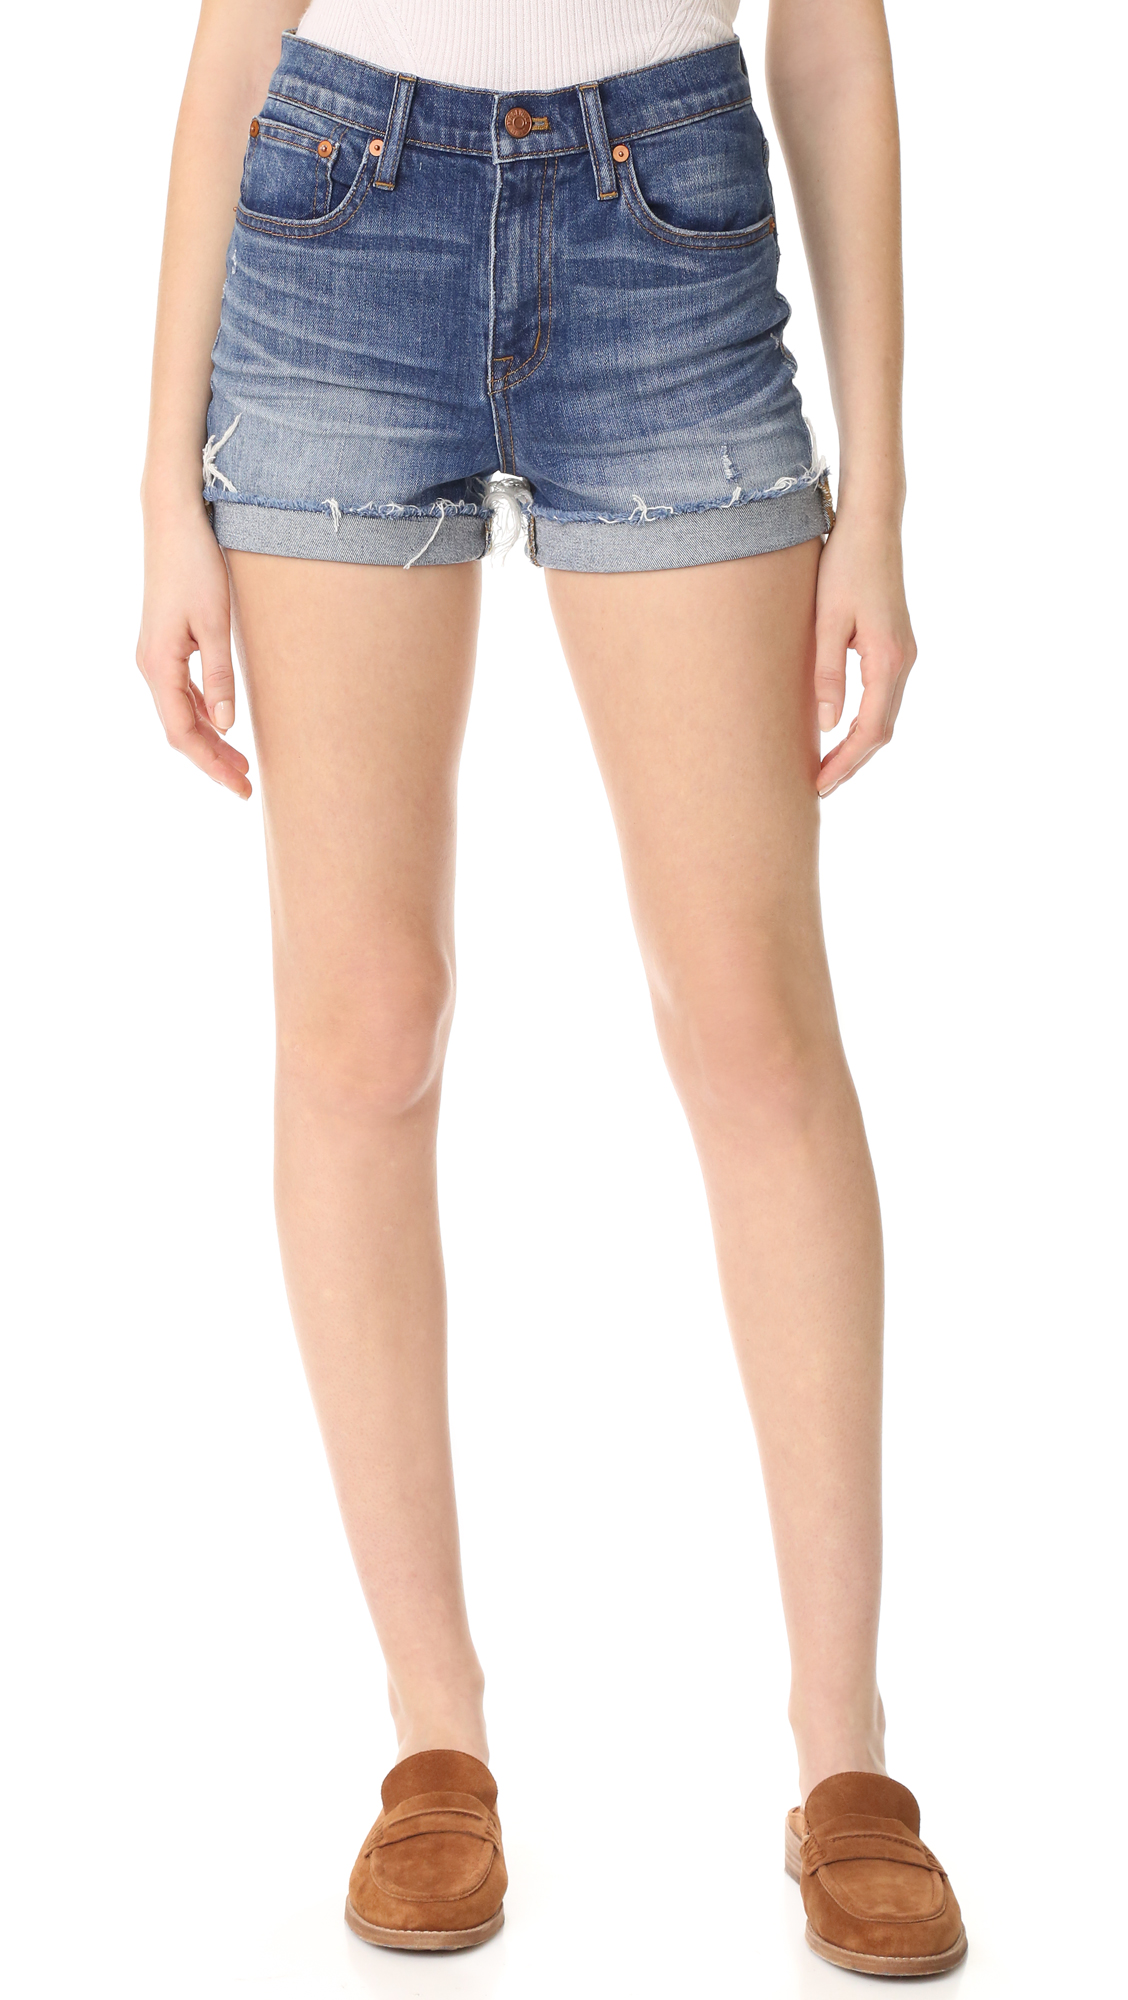 42bce15d53c Madewell High Rise Denim Boy Shorts in Glen Oaks